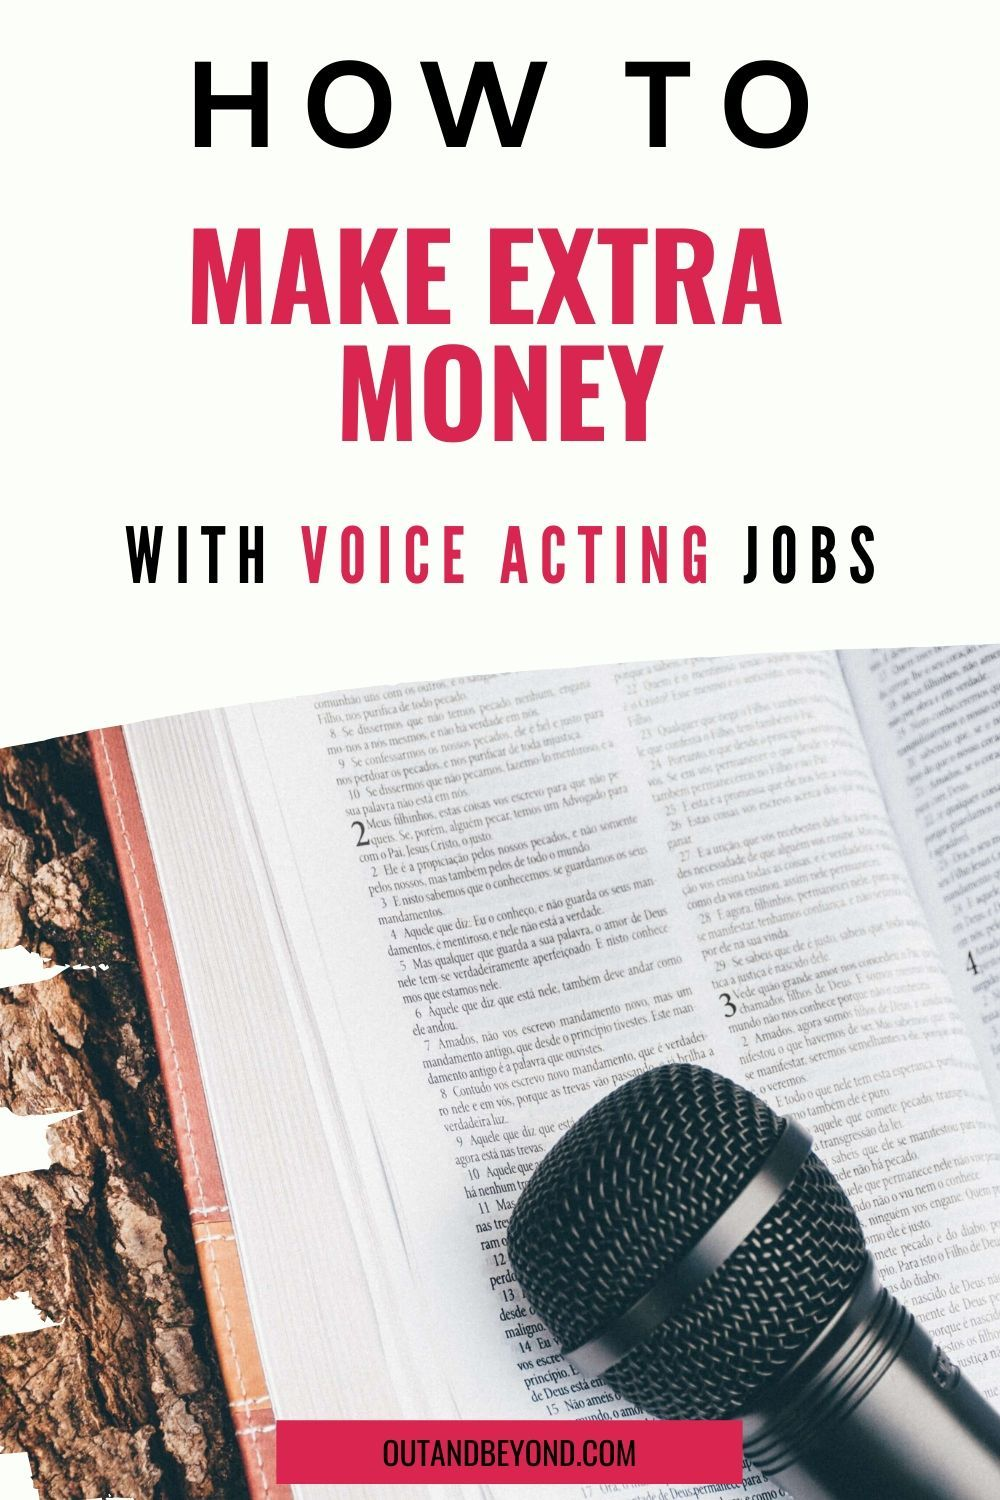 How To Make Extra Money With Voice Acting Jobs in 2020